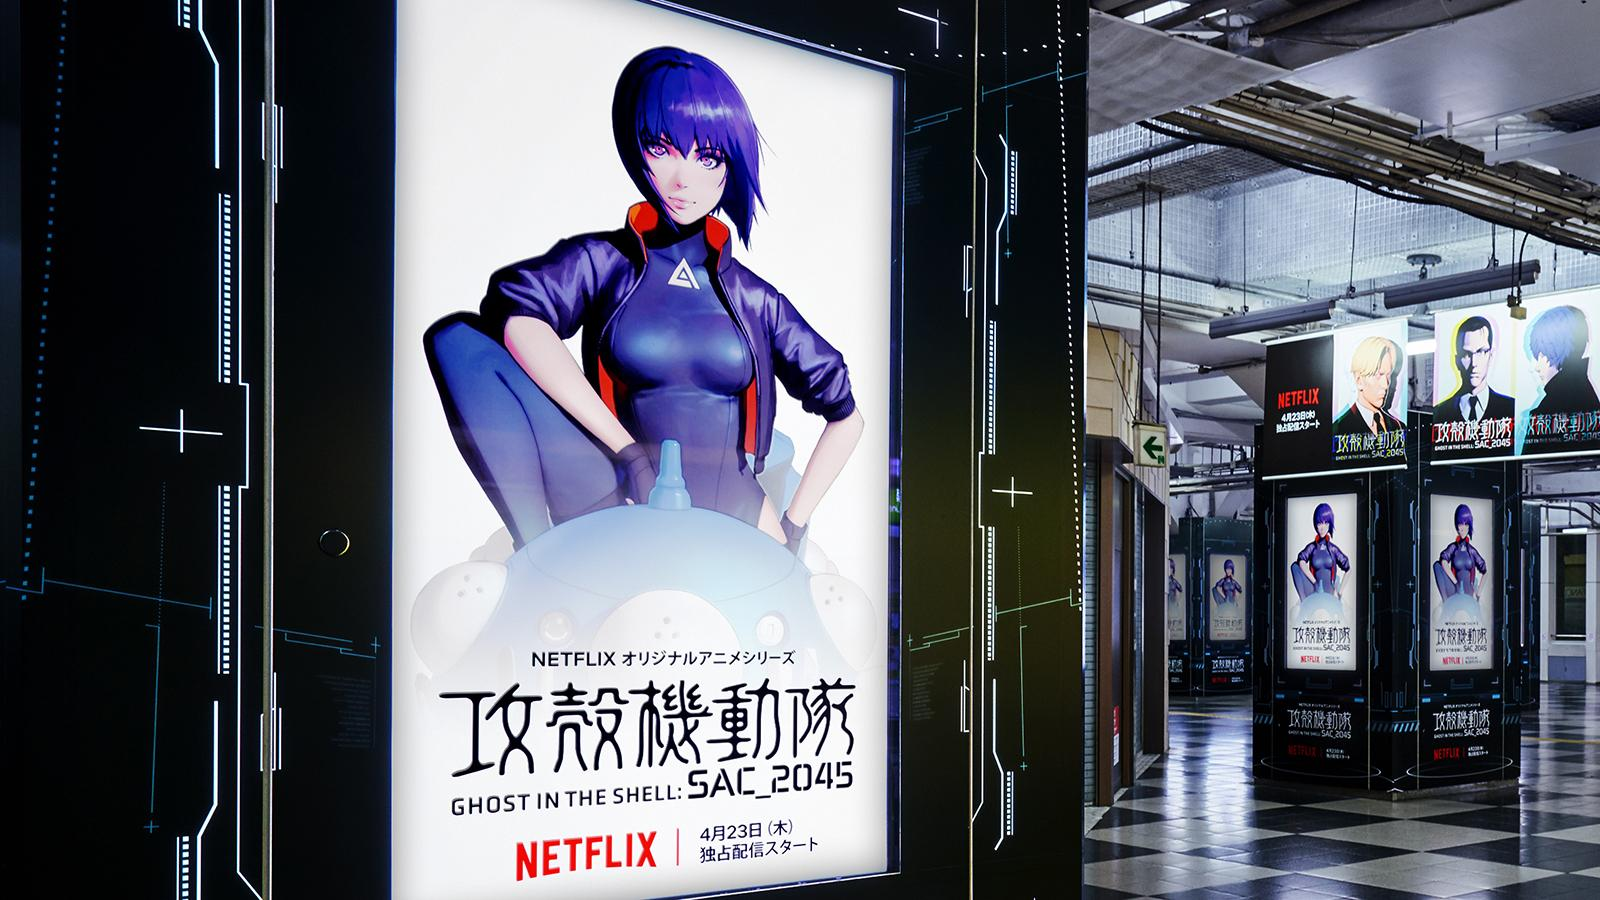 Ghost in the Shell 5G AR event will surely be a world first